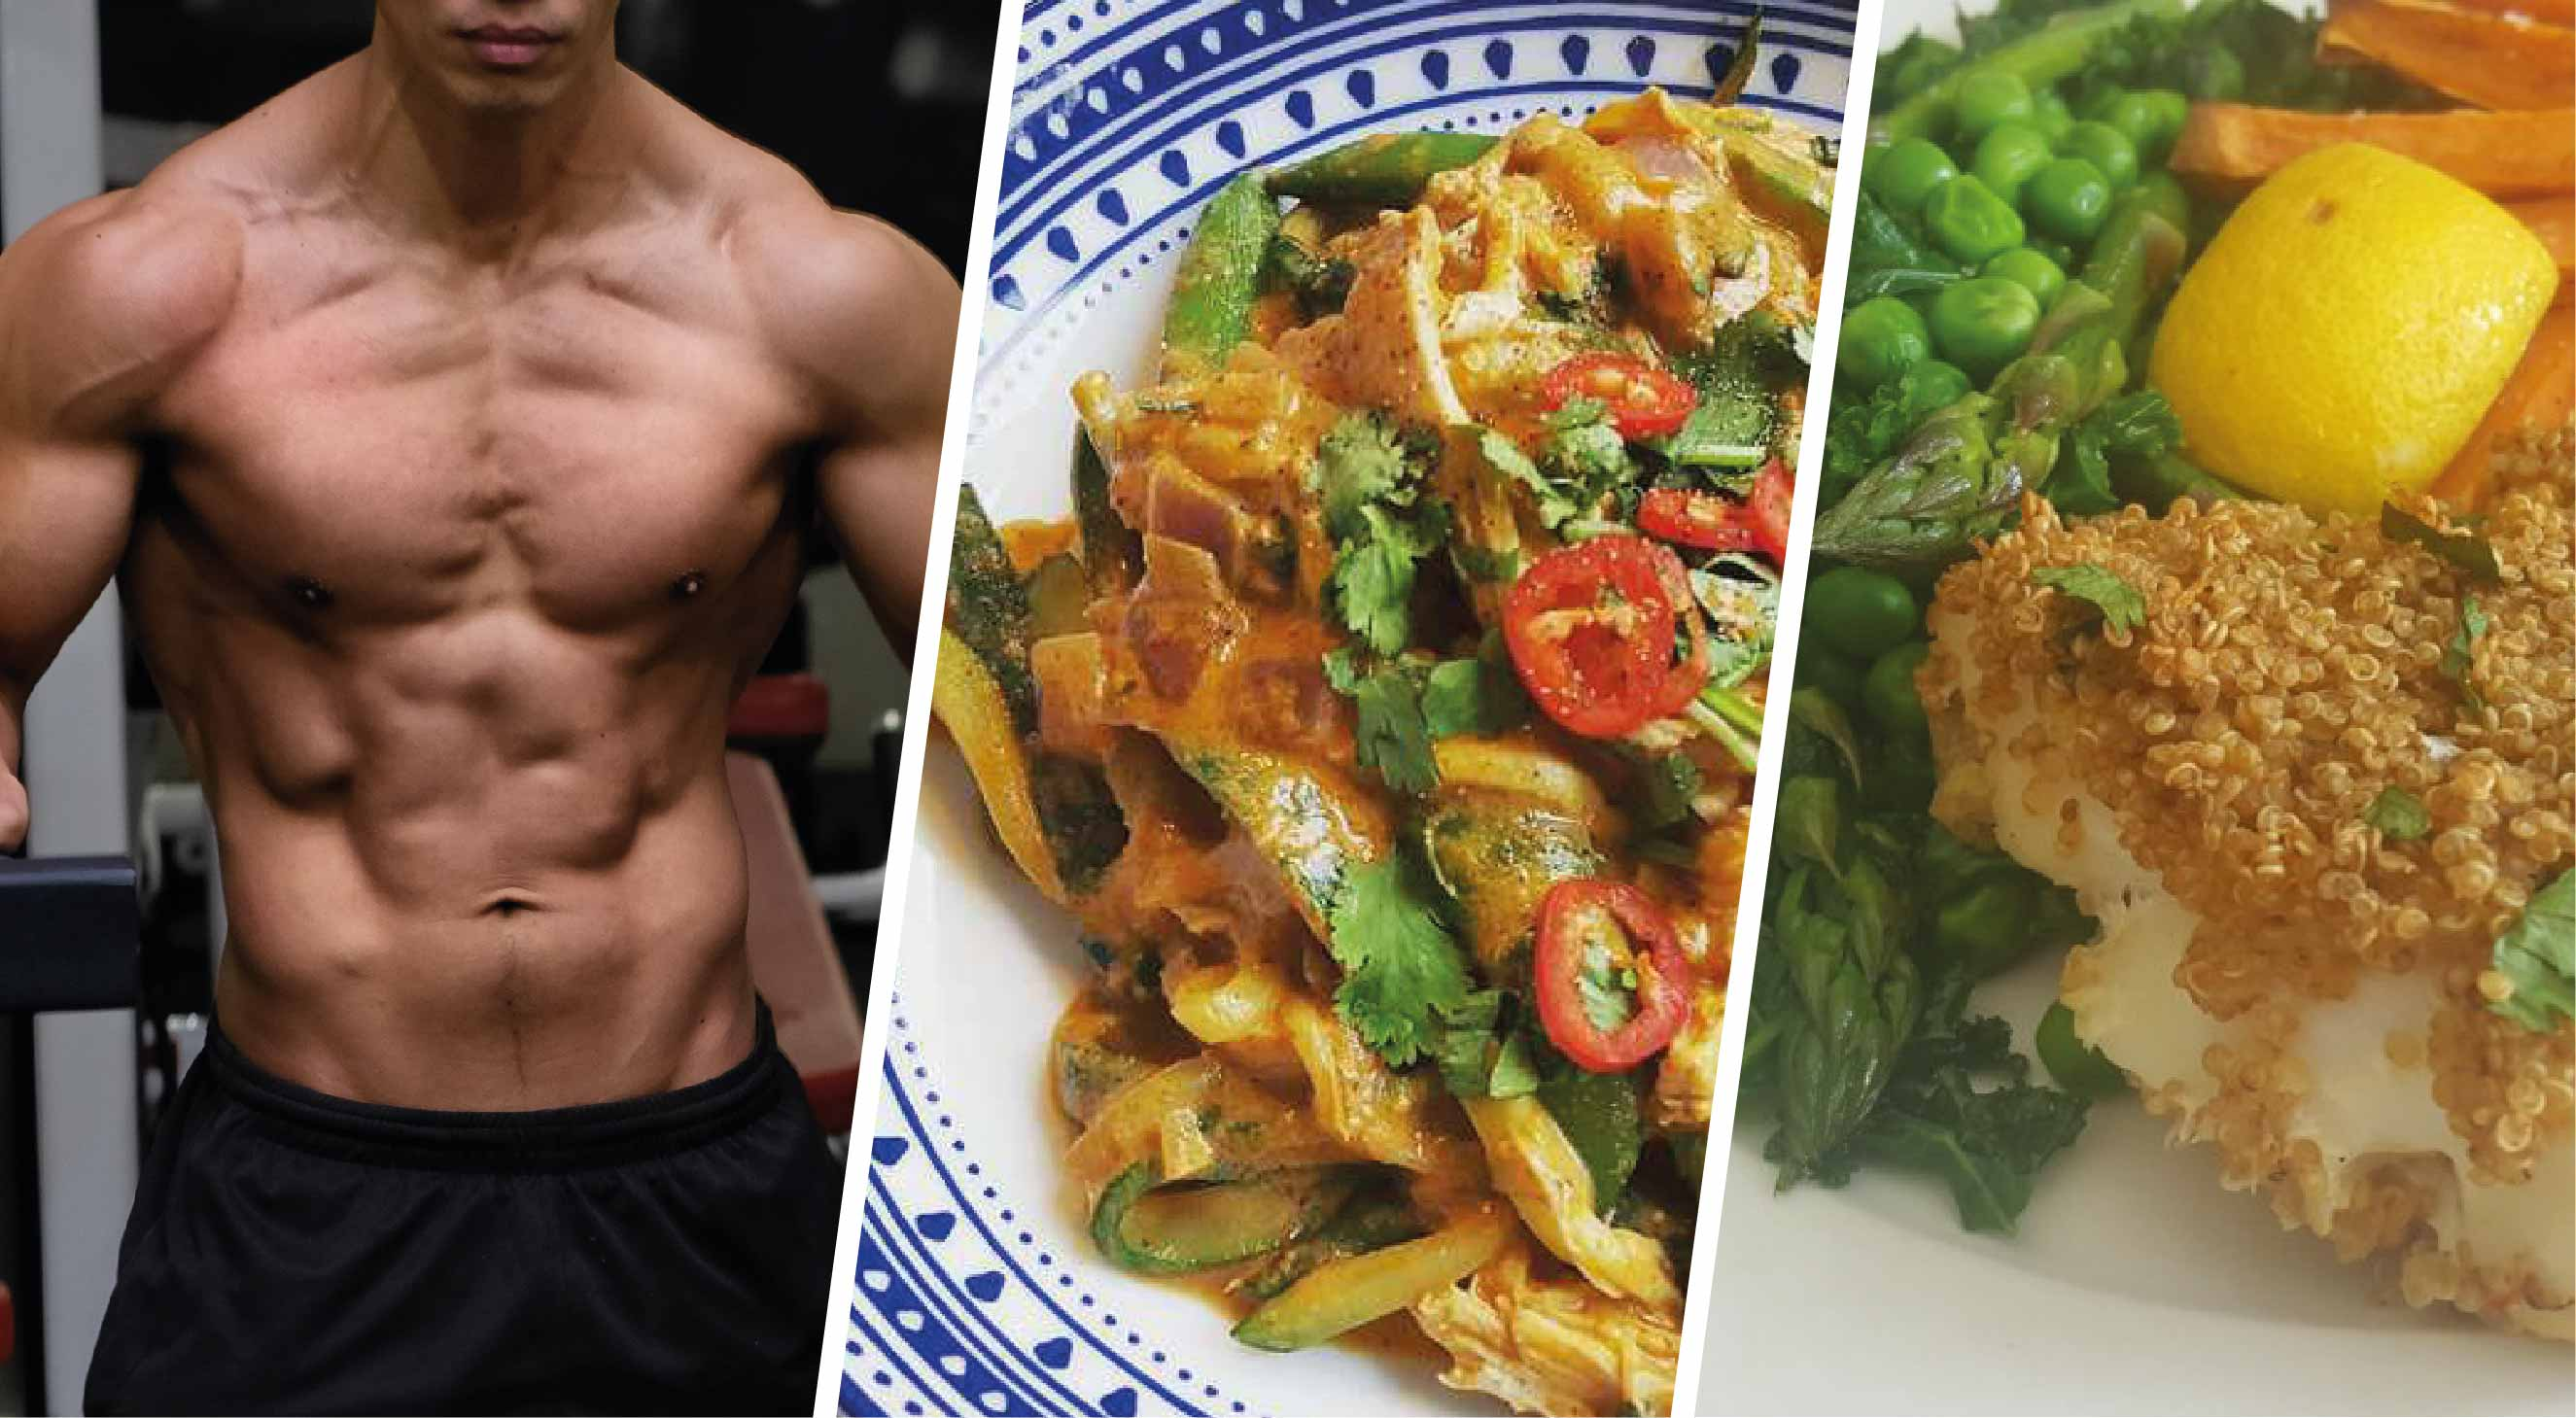 Top 5 dinner recipes for a body transformation diet up fitness recipes top 5 transformation dinners forumfinder Gallery